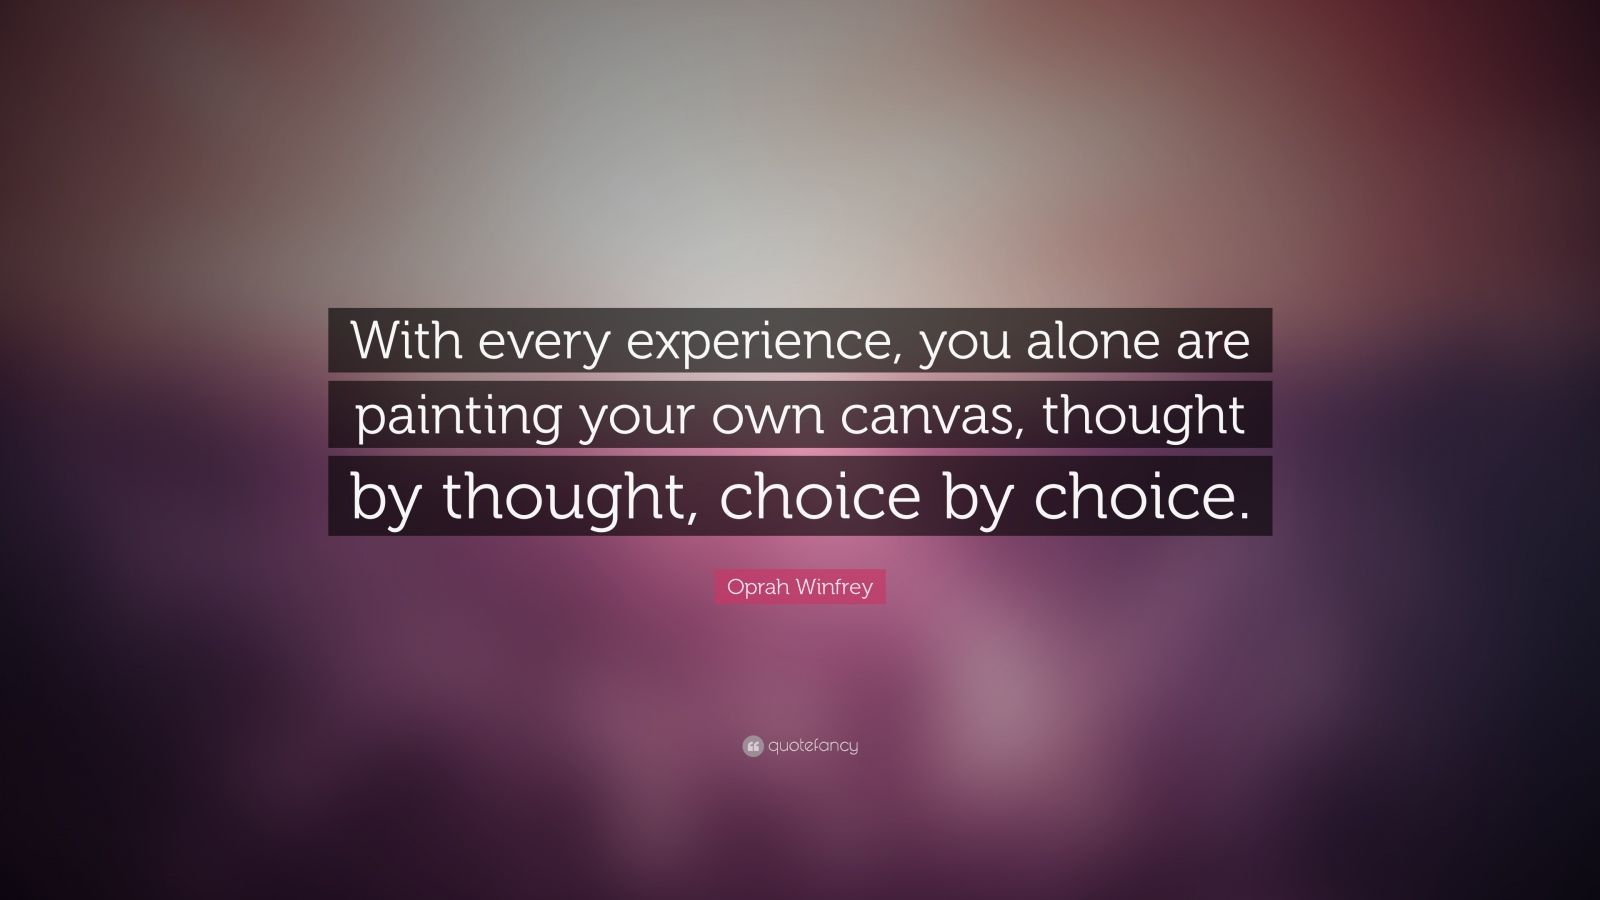 """Oprah Winfrey Quote: """"With every experience, you alone are painting your own canvas, thought by thought, choice by choice. """""""